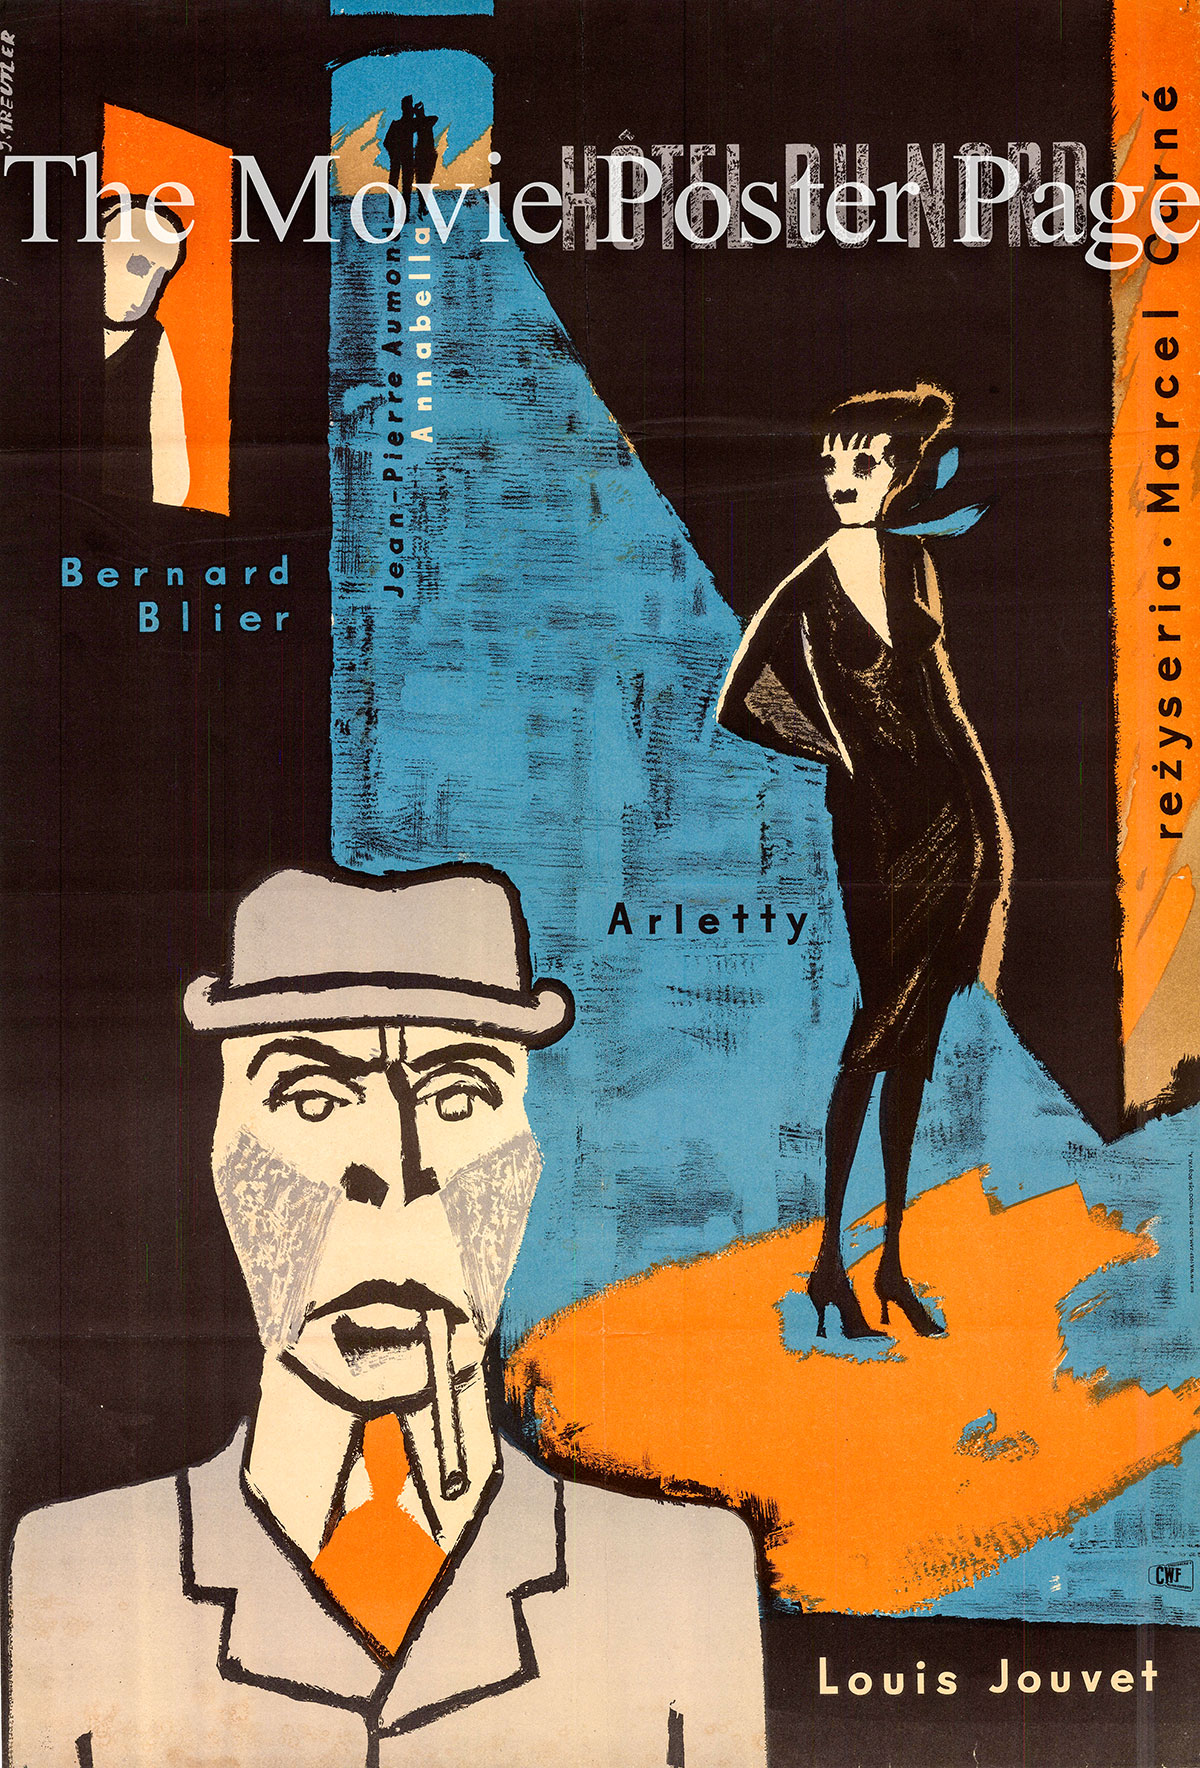 Pictured is a Polish poster designed to promote the 1938 Marcel Carné film Hotel du Nord starring Annabella